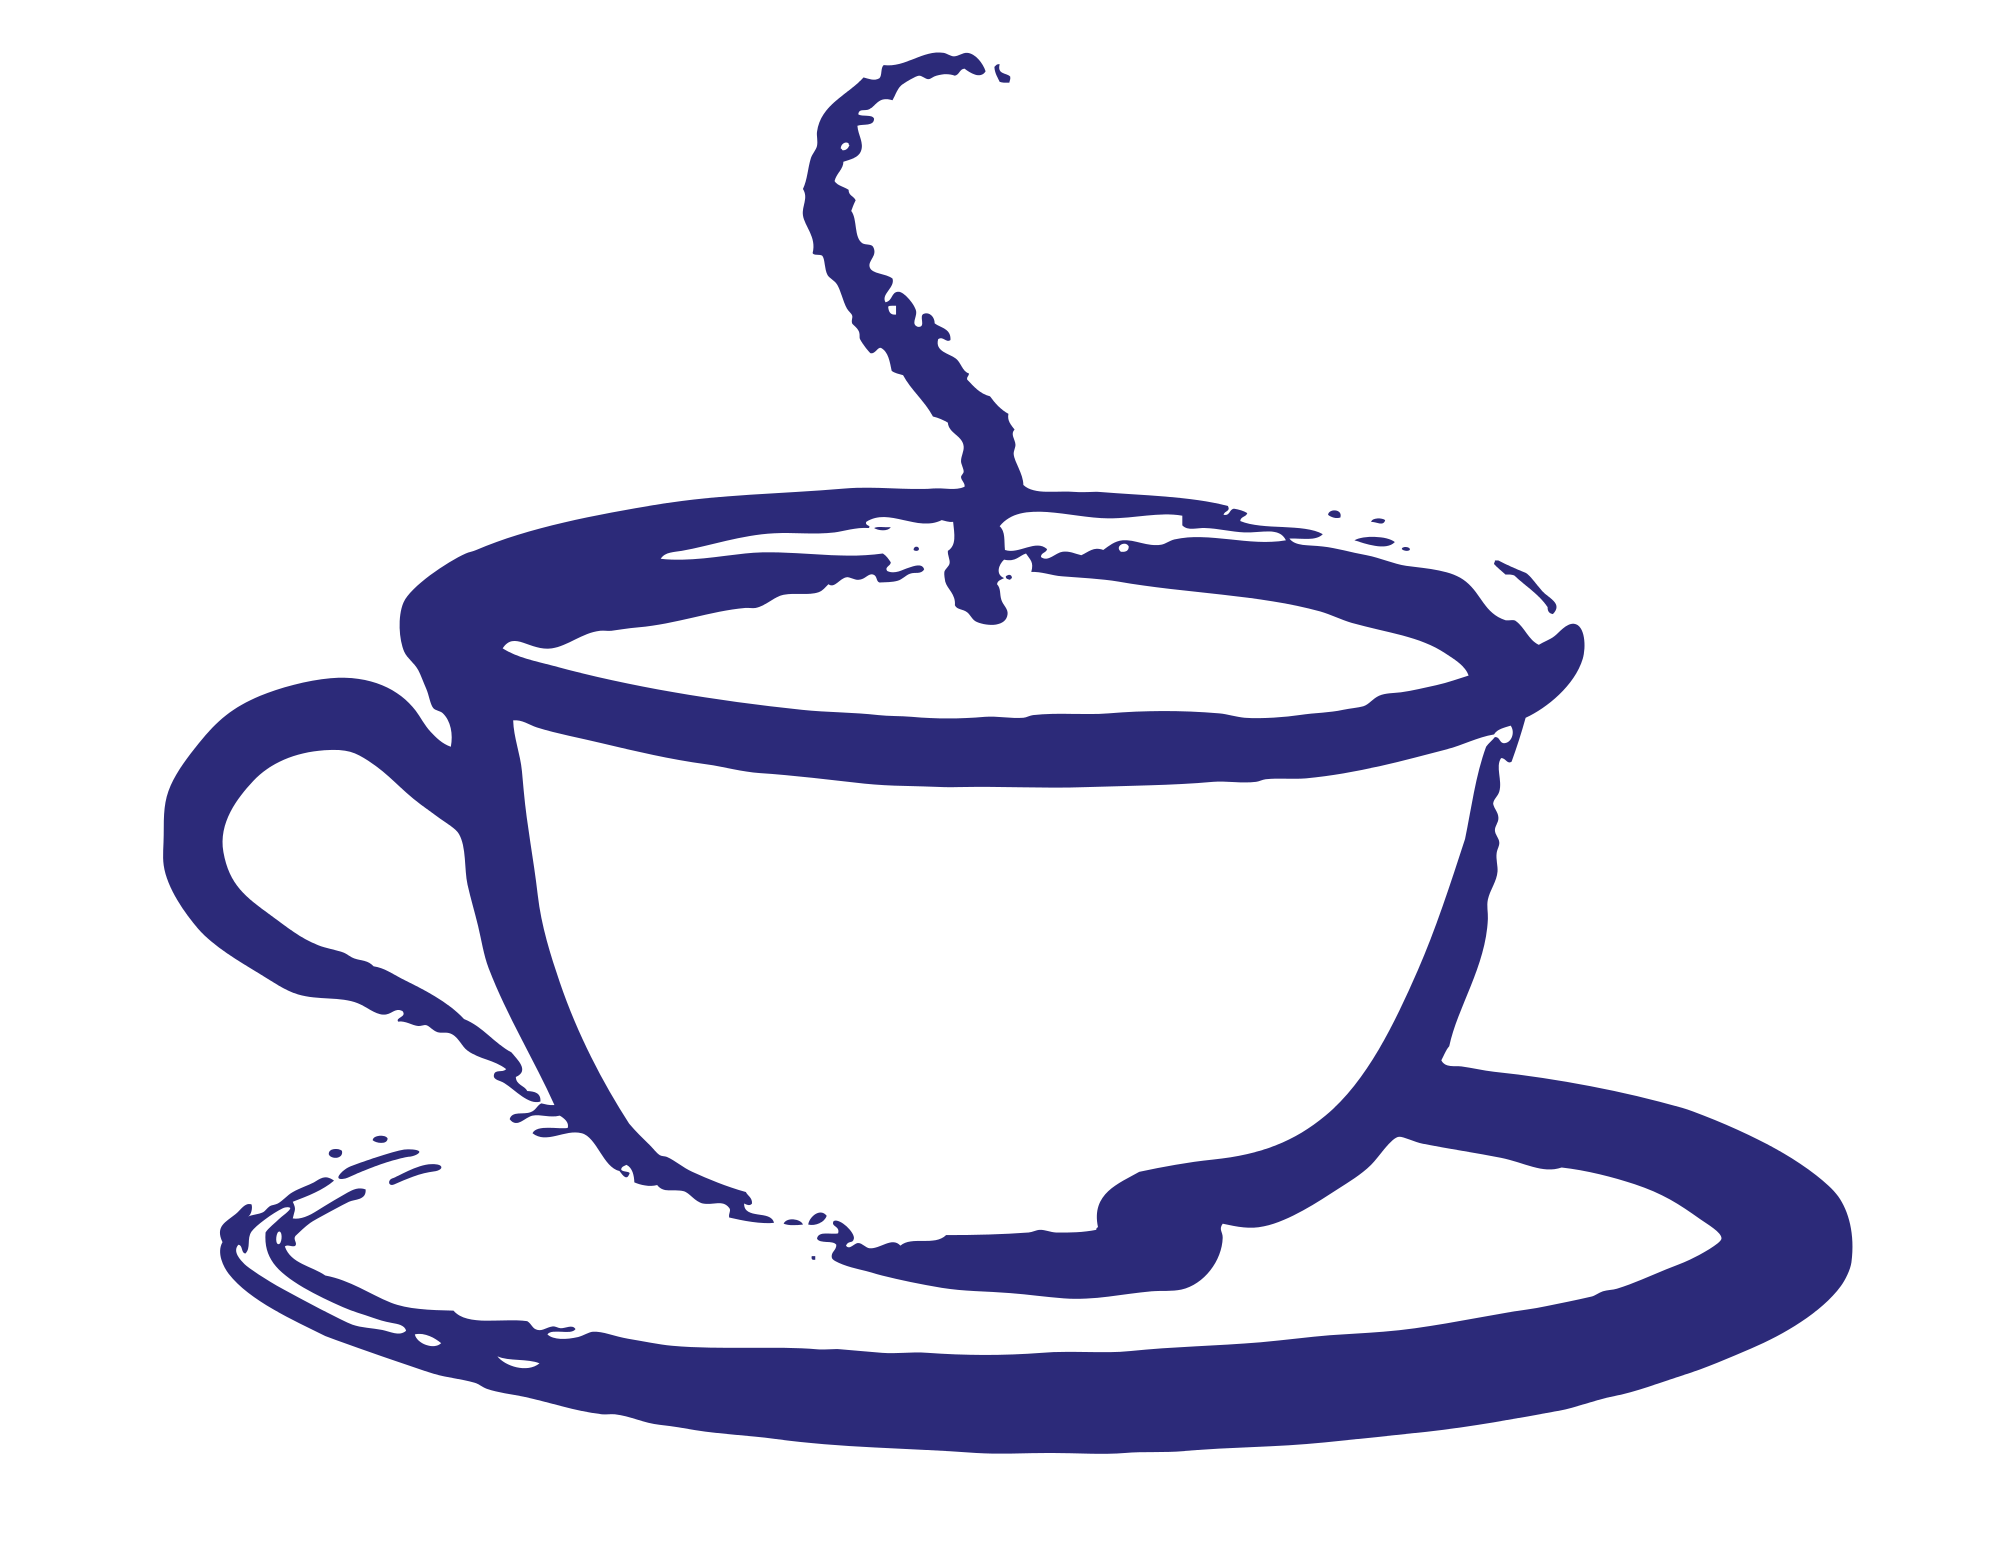 Teacup clipart. File svg wikimedia commons